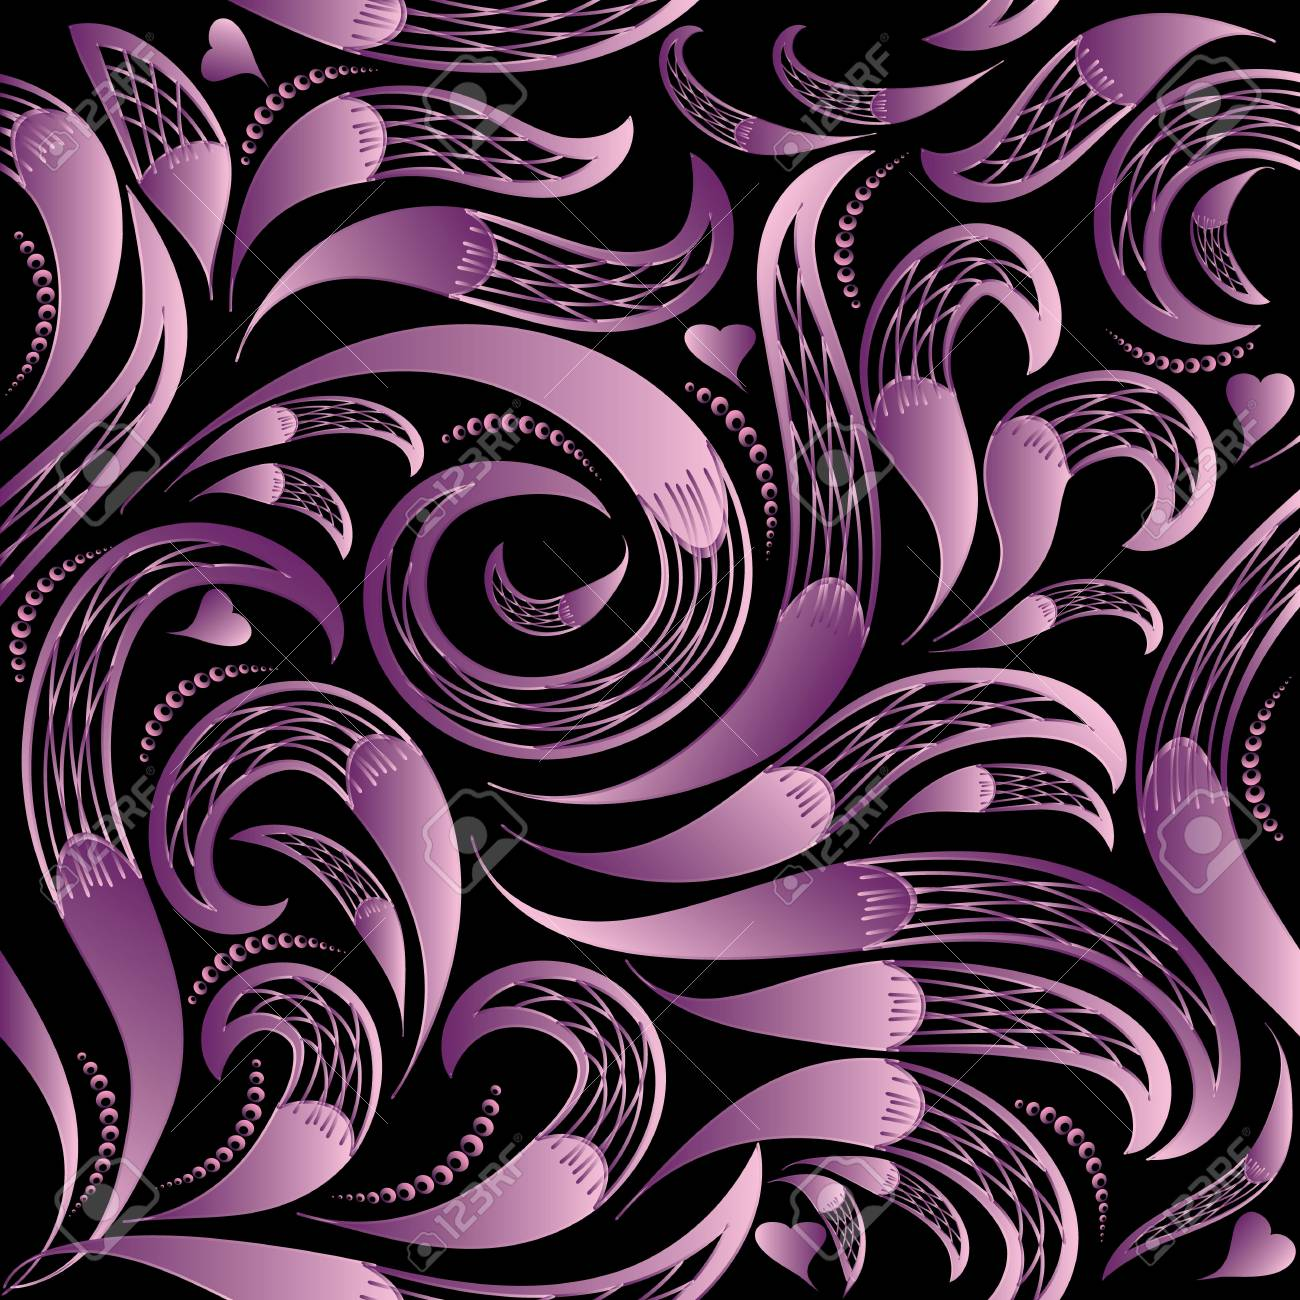 Floral Black Background Wallpaper Vintage Hand Drawn Violet 3d Paisley